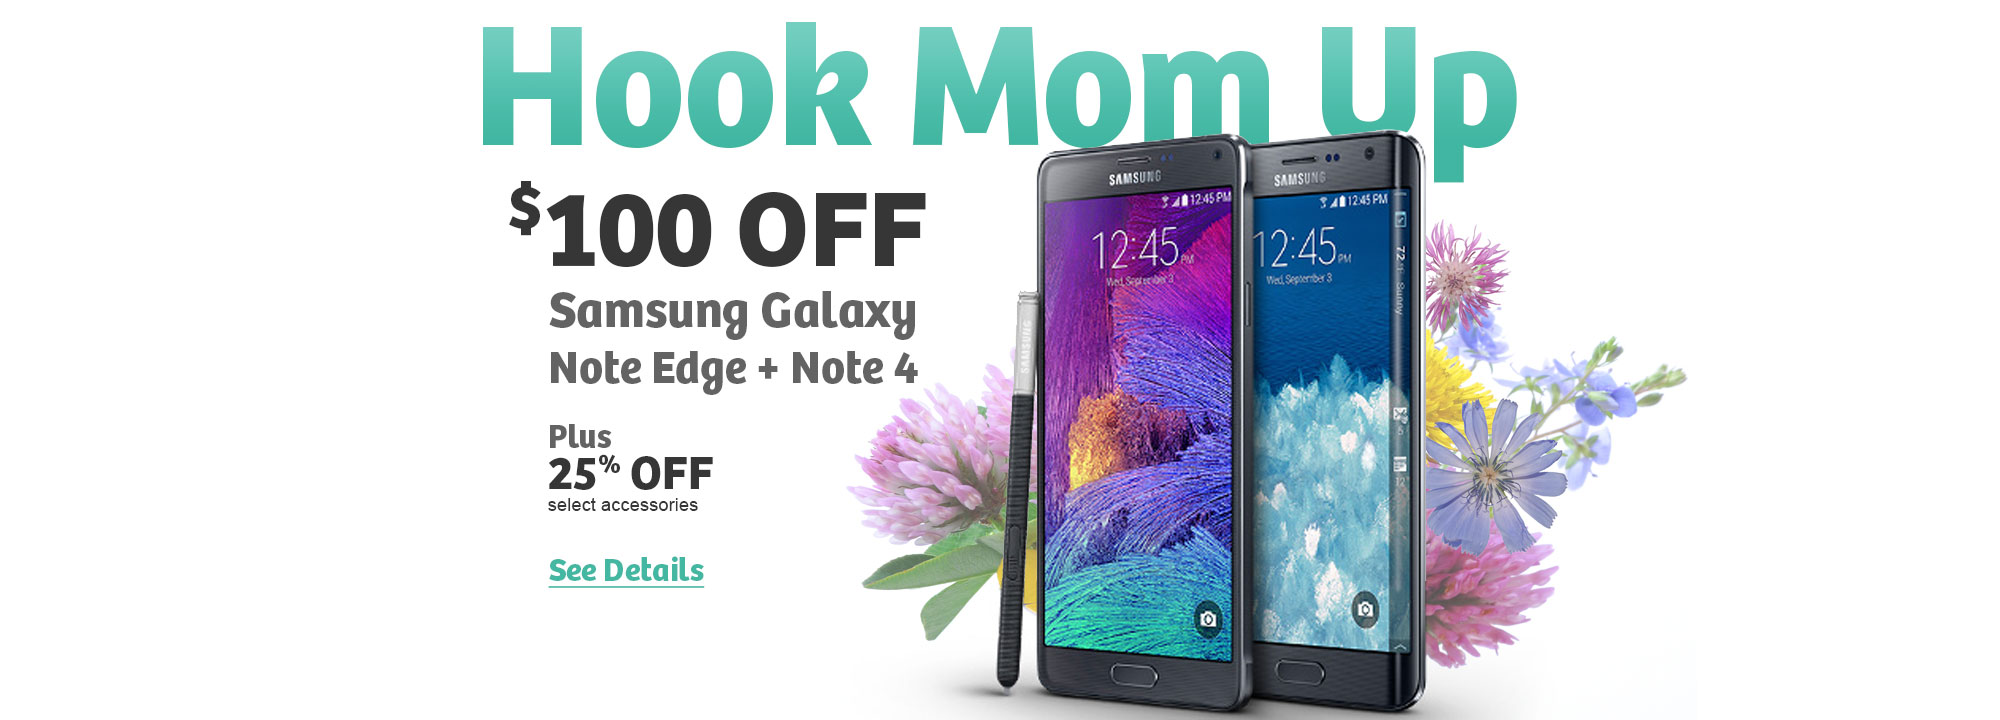 $100 OFF Samsung Galaxy Note 4 and Note Edge